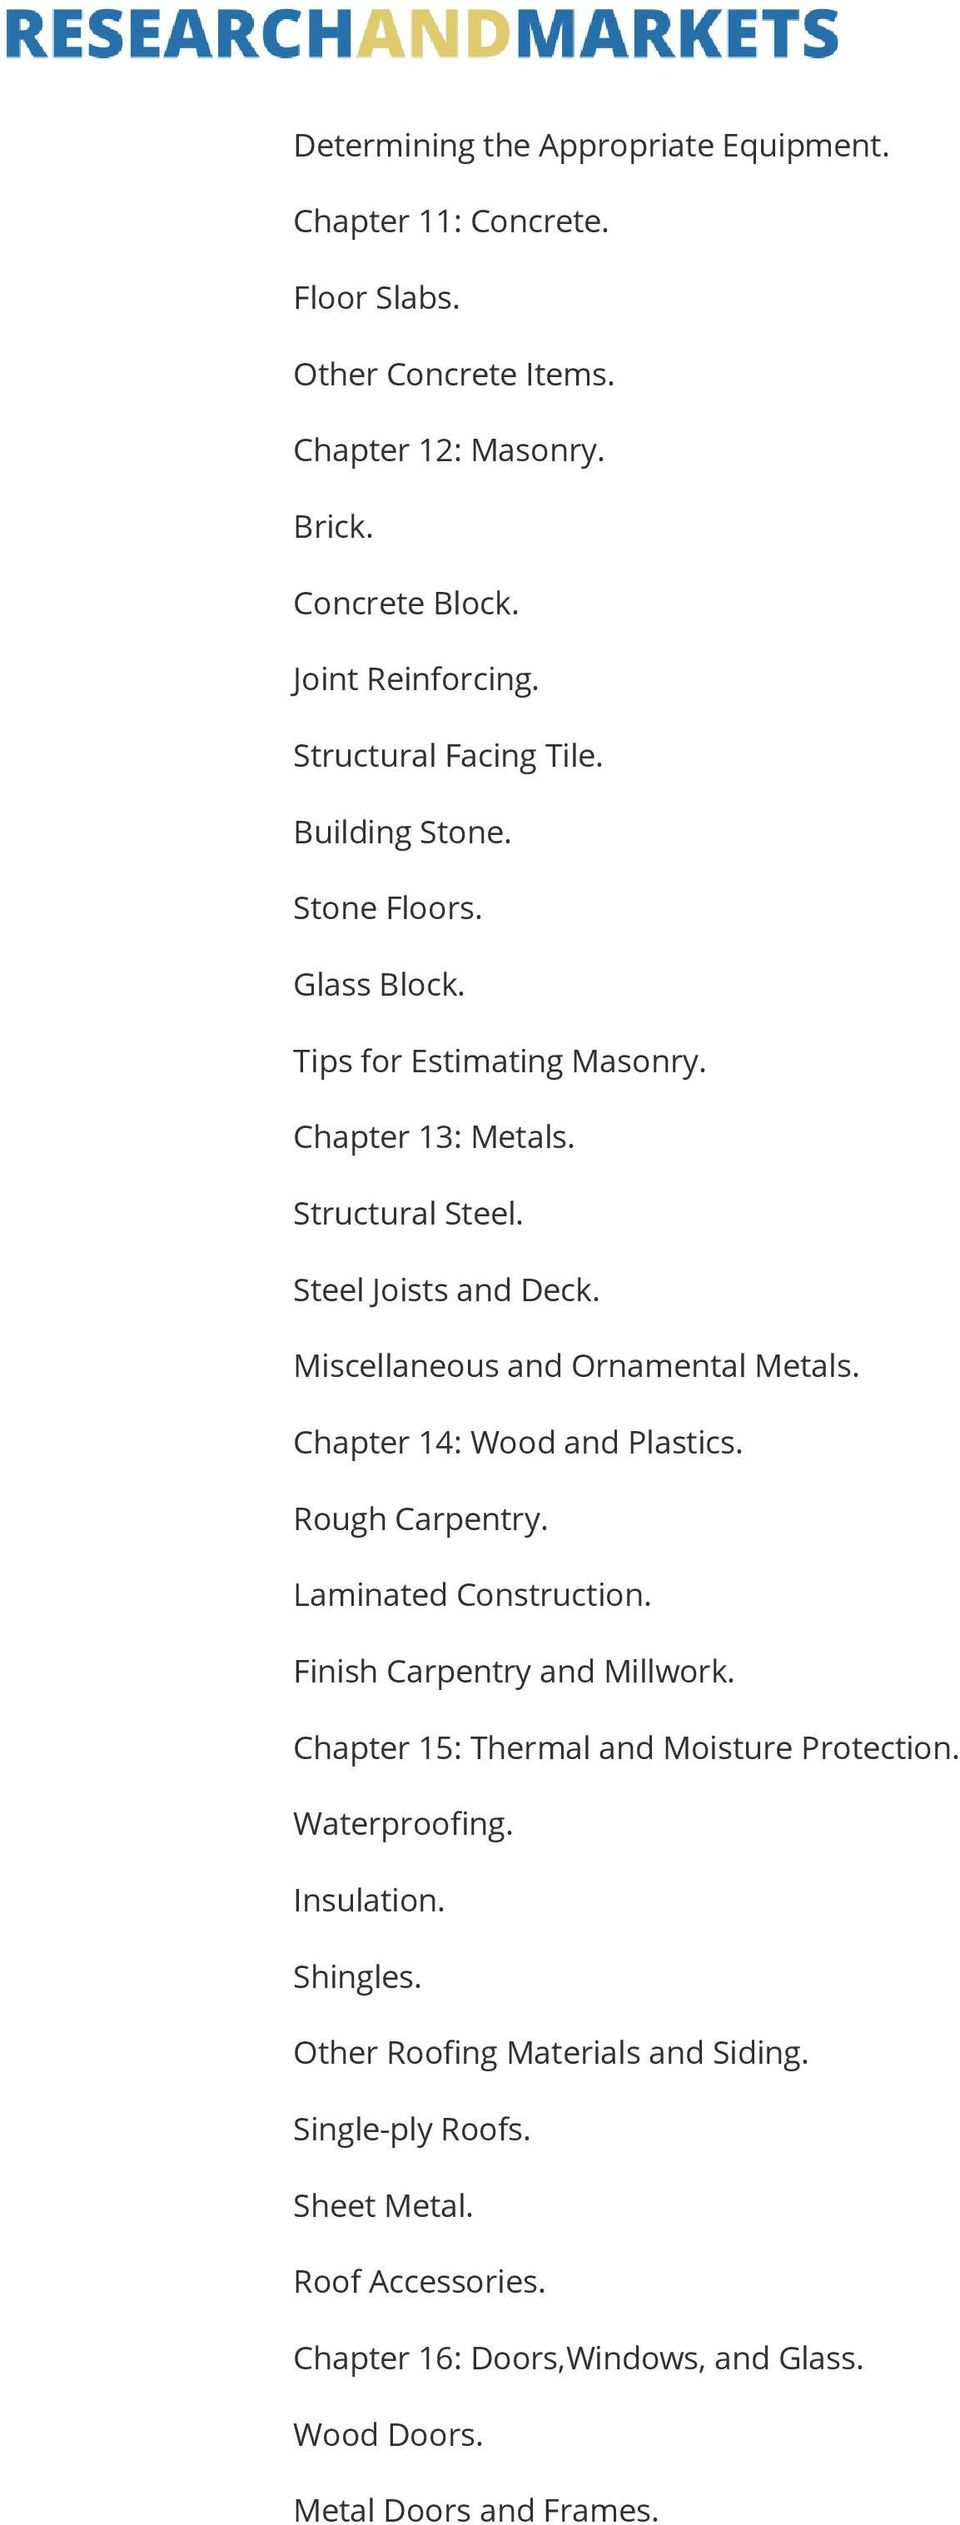 Miscellaneous and Ornamental Metals. Chapter 14: Wood and Plastics. Rough Carpentry. Laminated Construction. Finish Carpentry and Millwork.